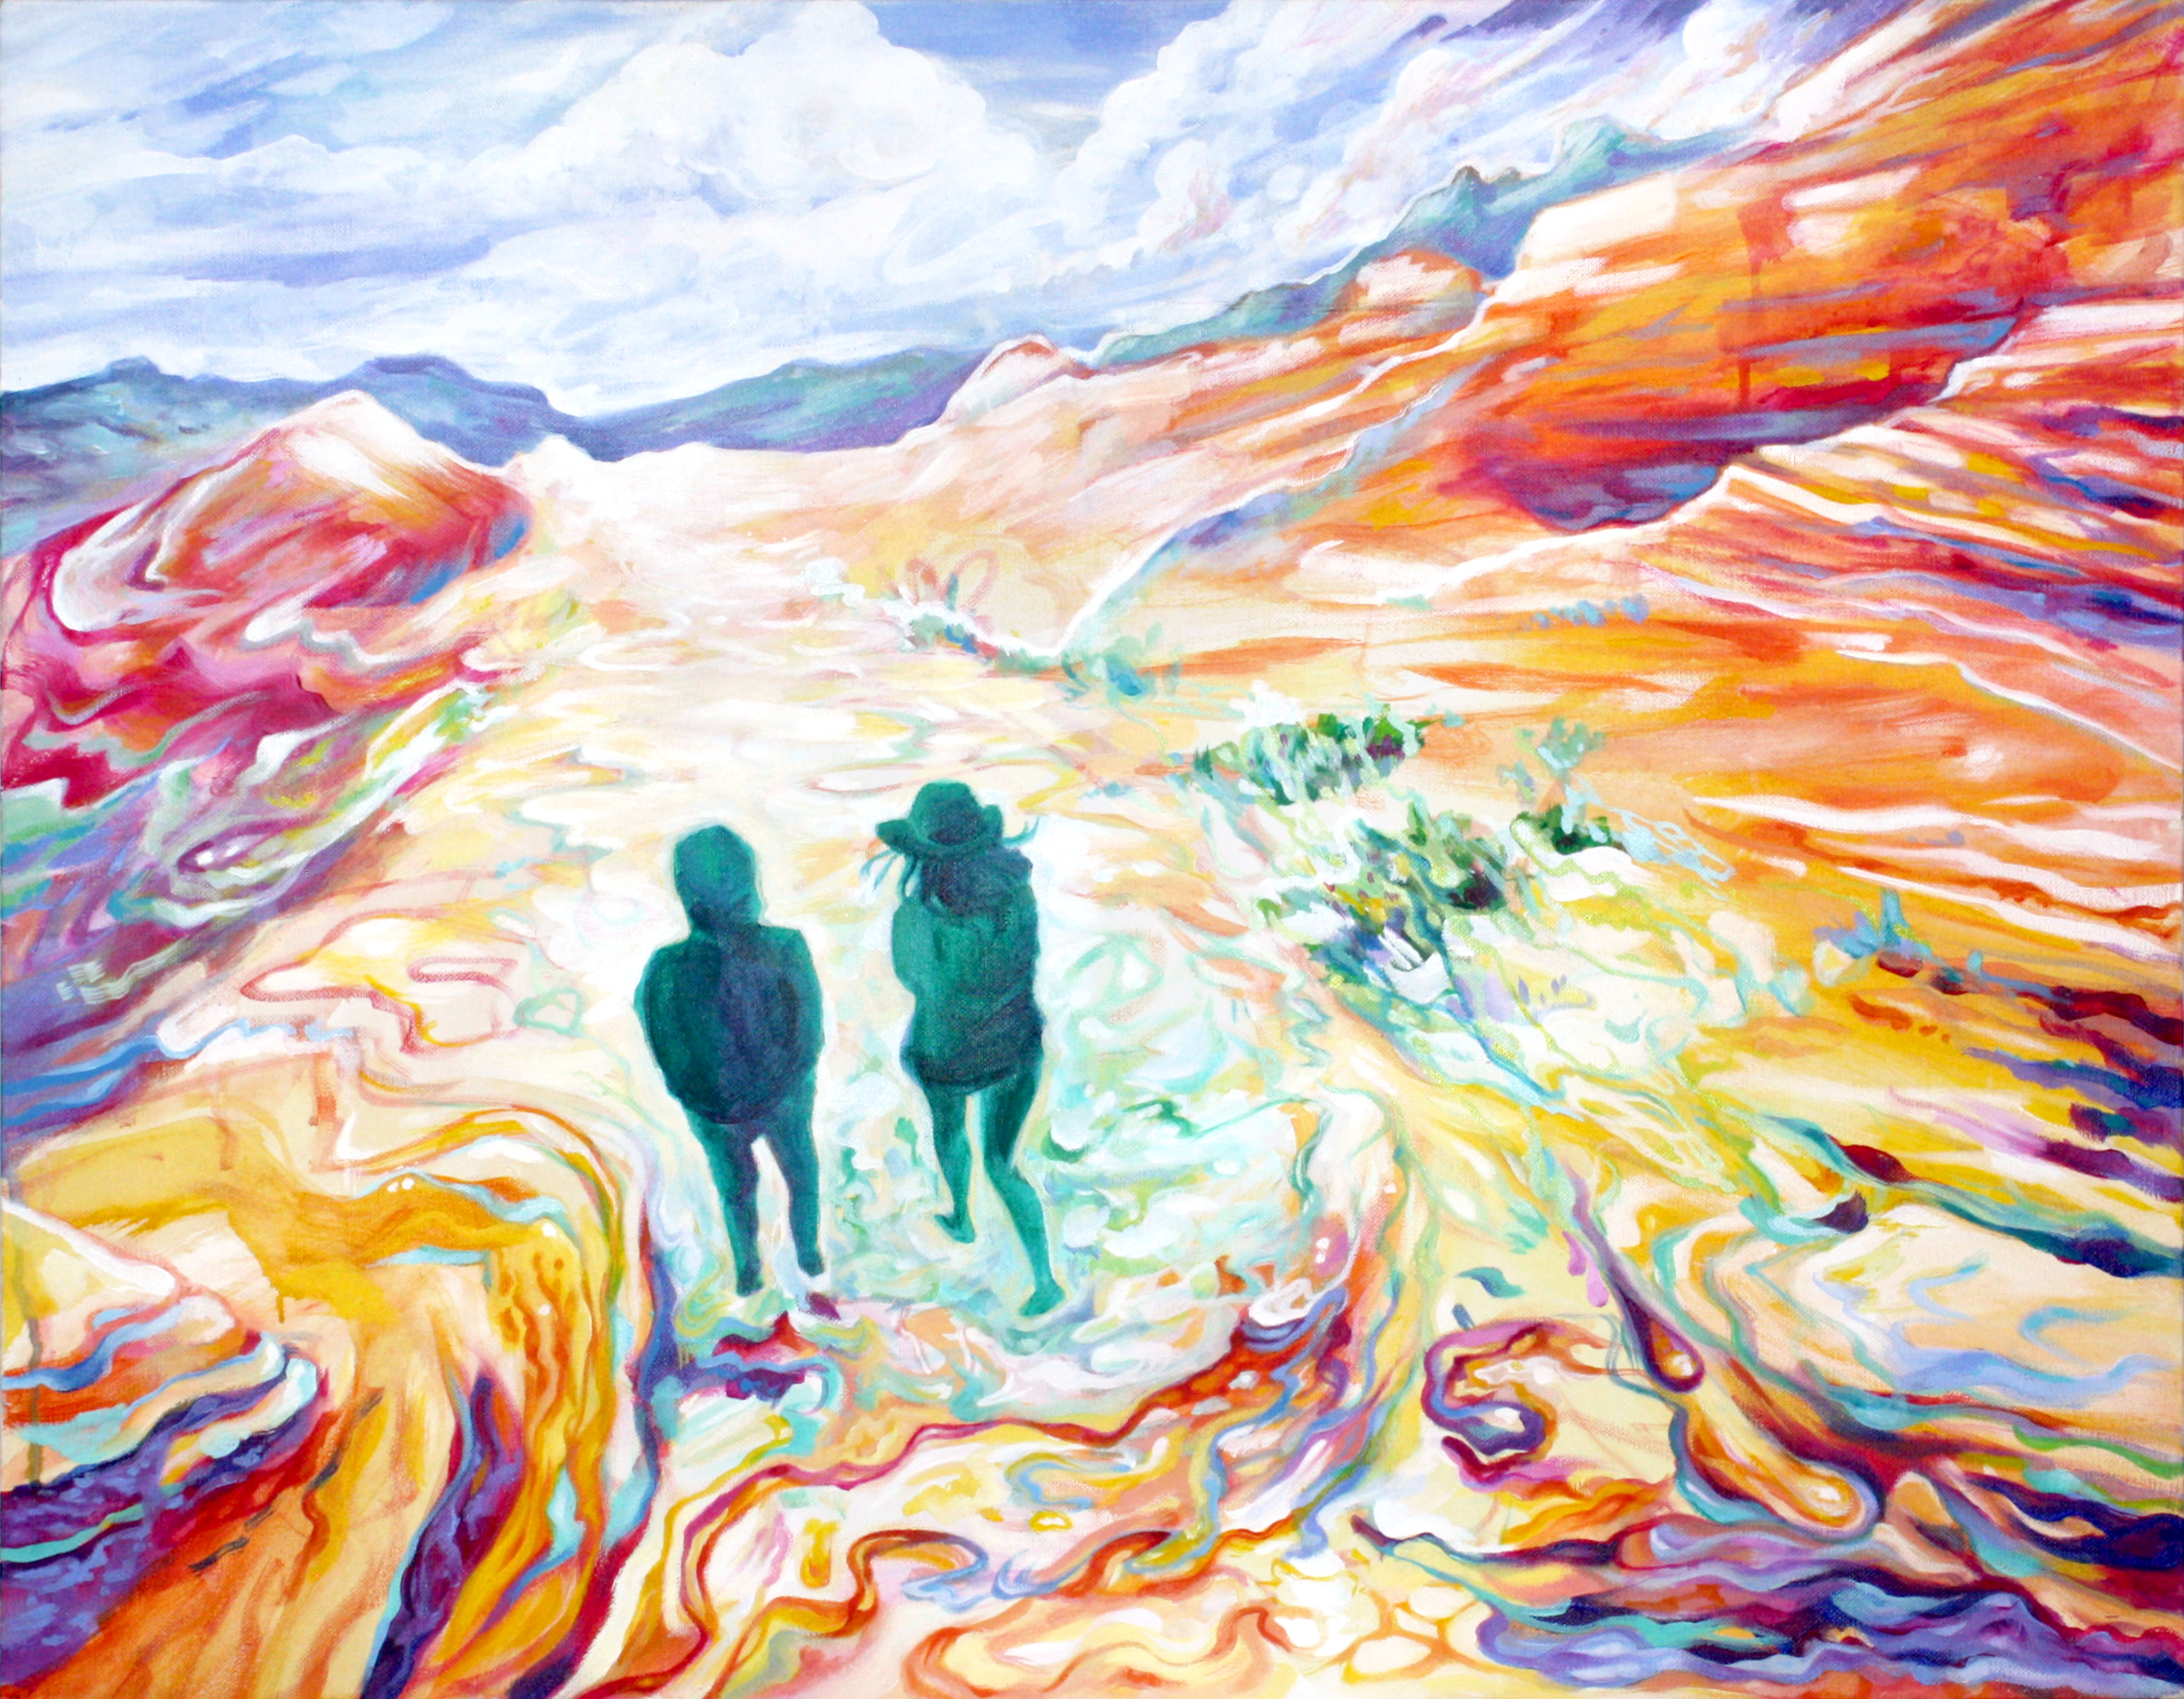 Psychedelic abstract landscape painting of two green figures in a canyon